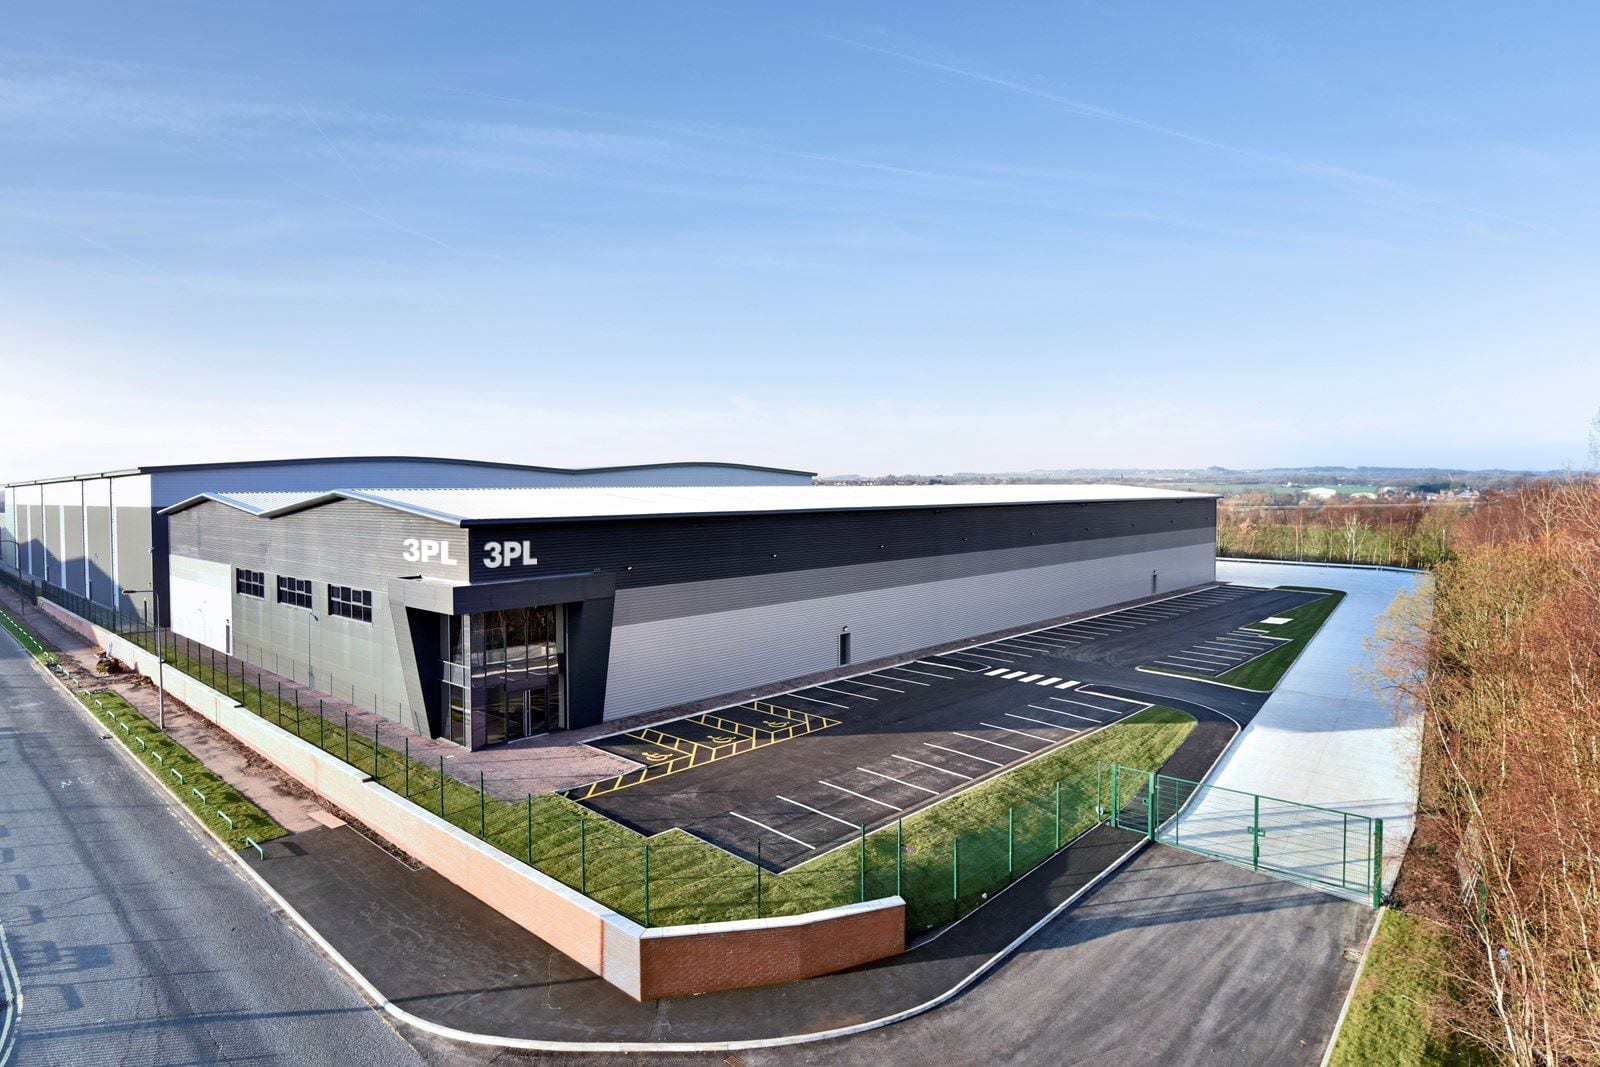 3PL unveils new Retail Distribution Centre in the North West